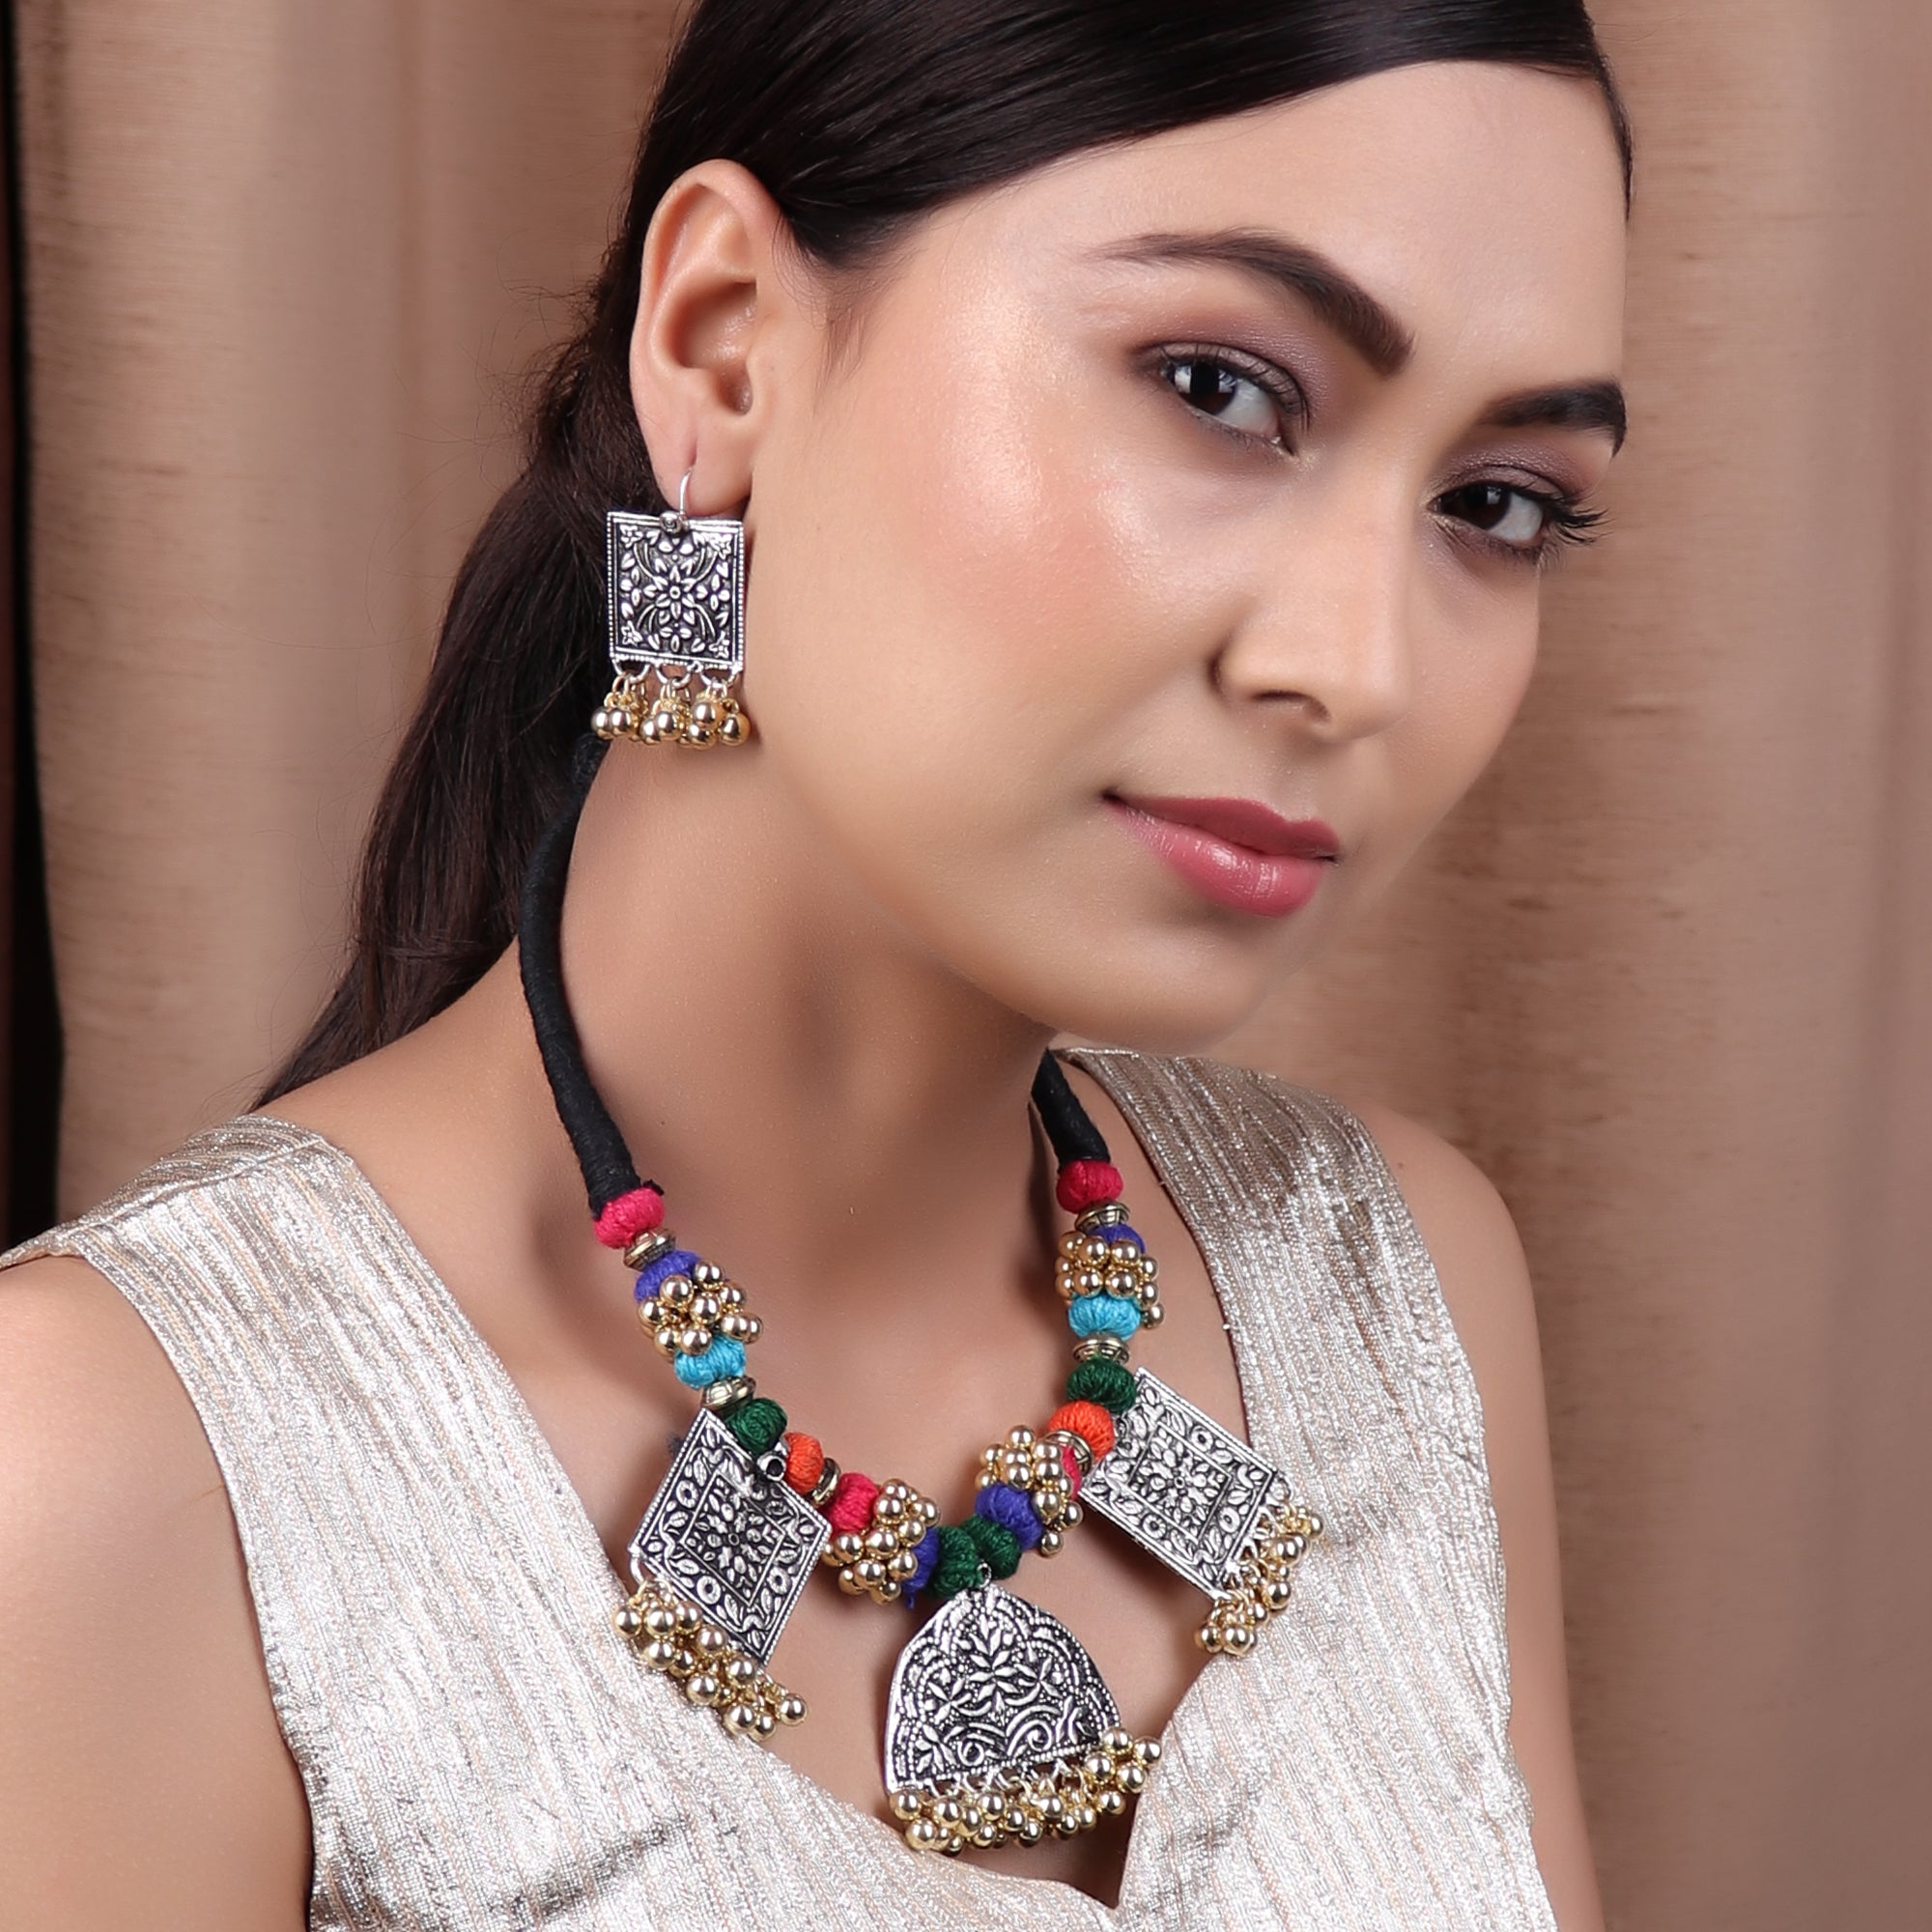 Necklace Set,The Cheerful Necklace Set in Multicolor Thread - Cippele Multi Store